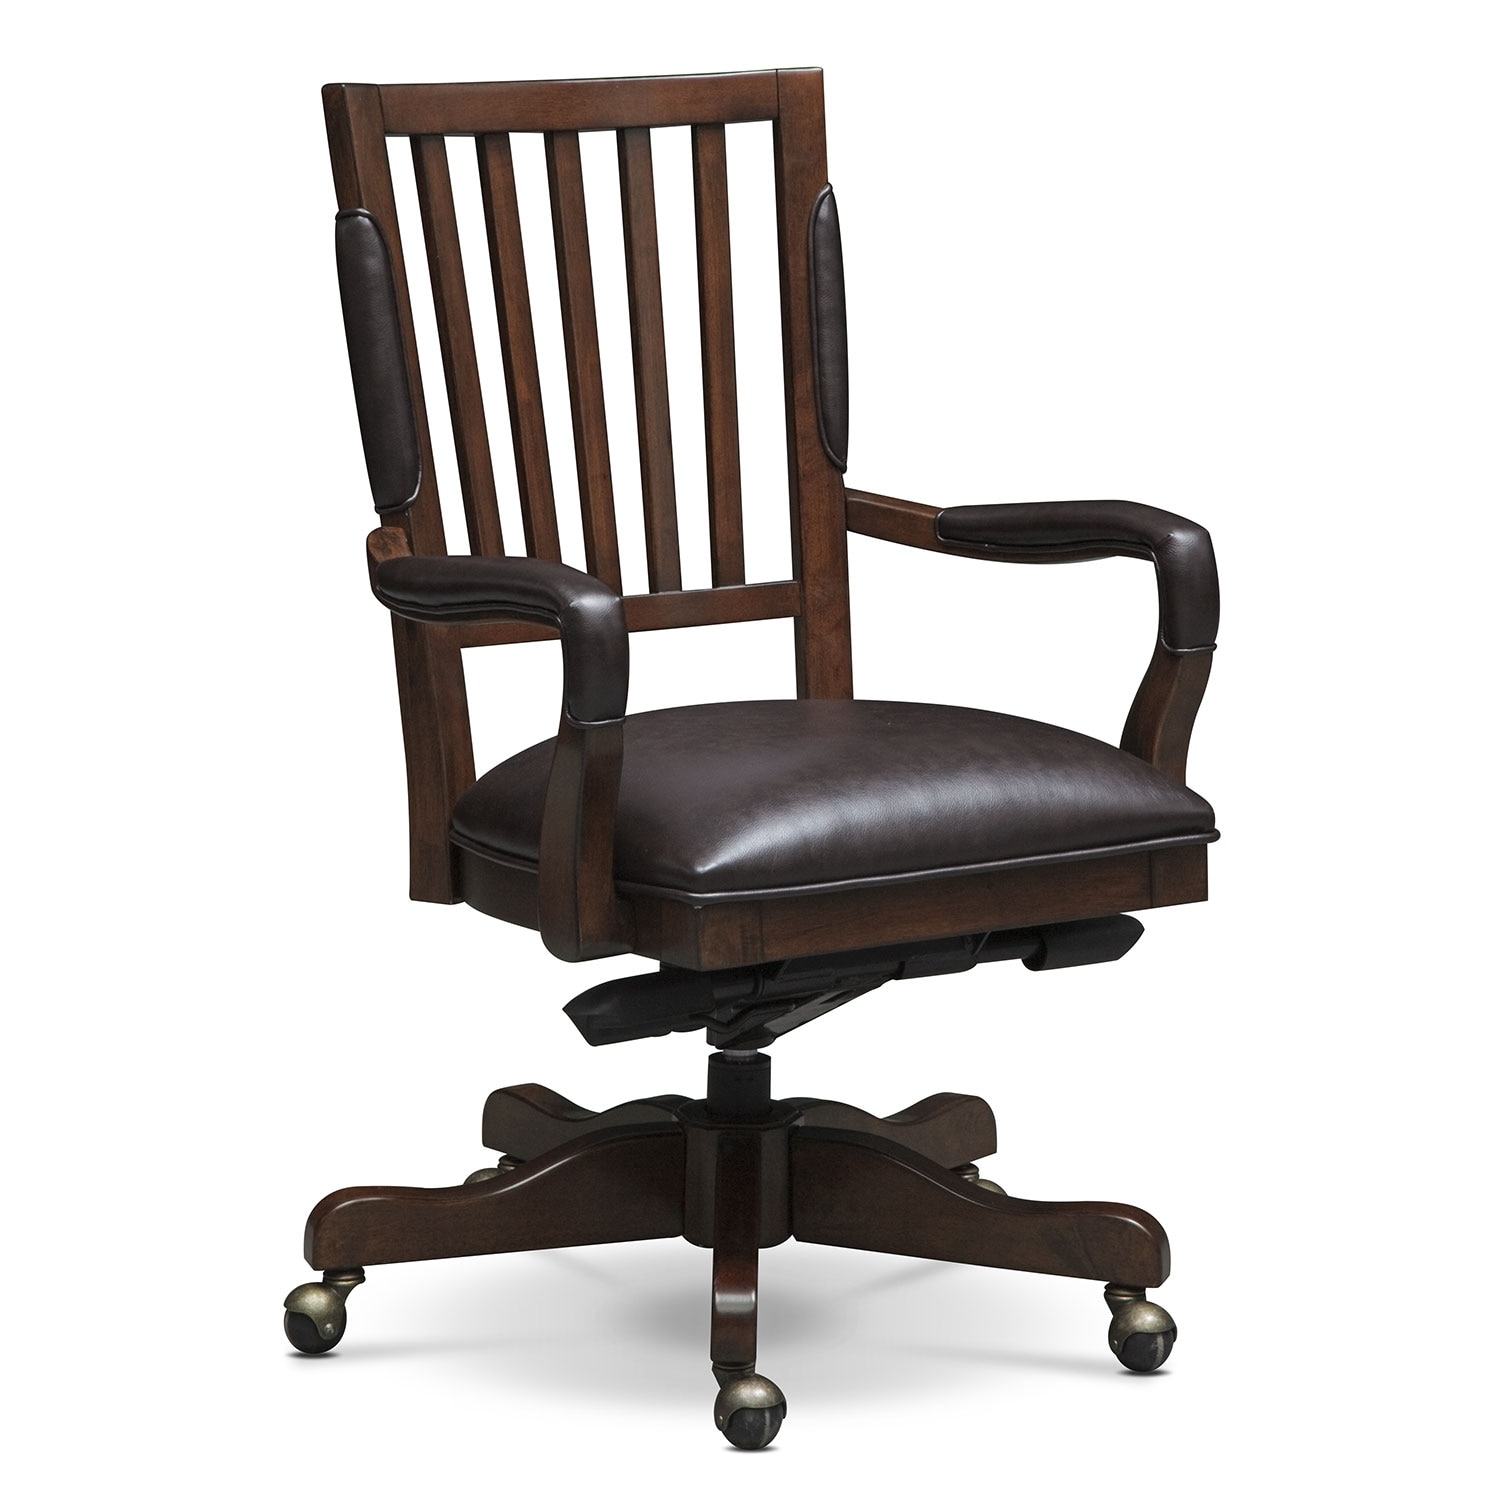 Best Value Furniture Store: Ashland Executive Desk And Chair Set - Cherry